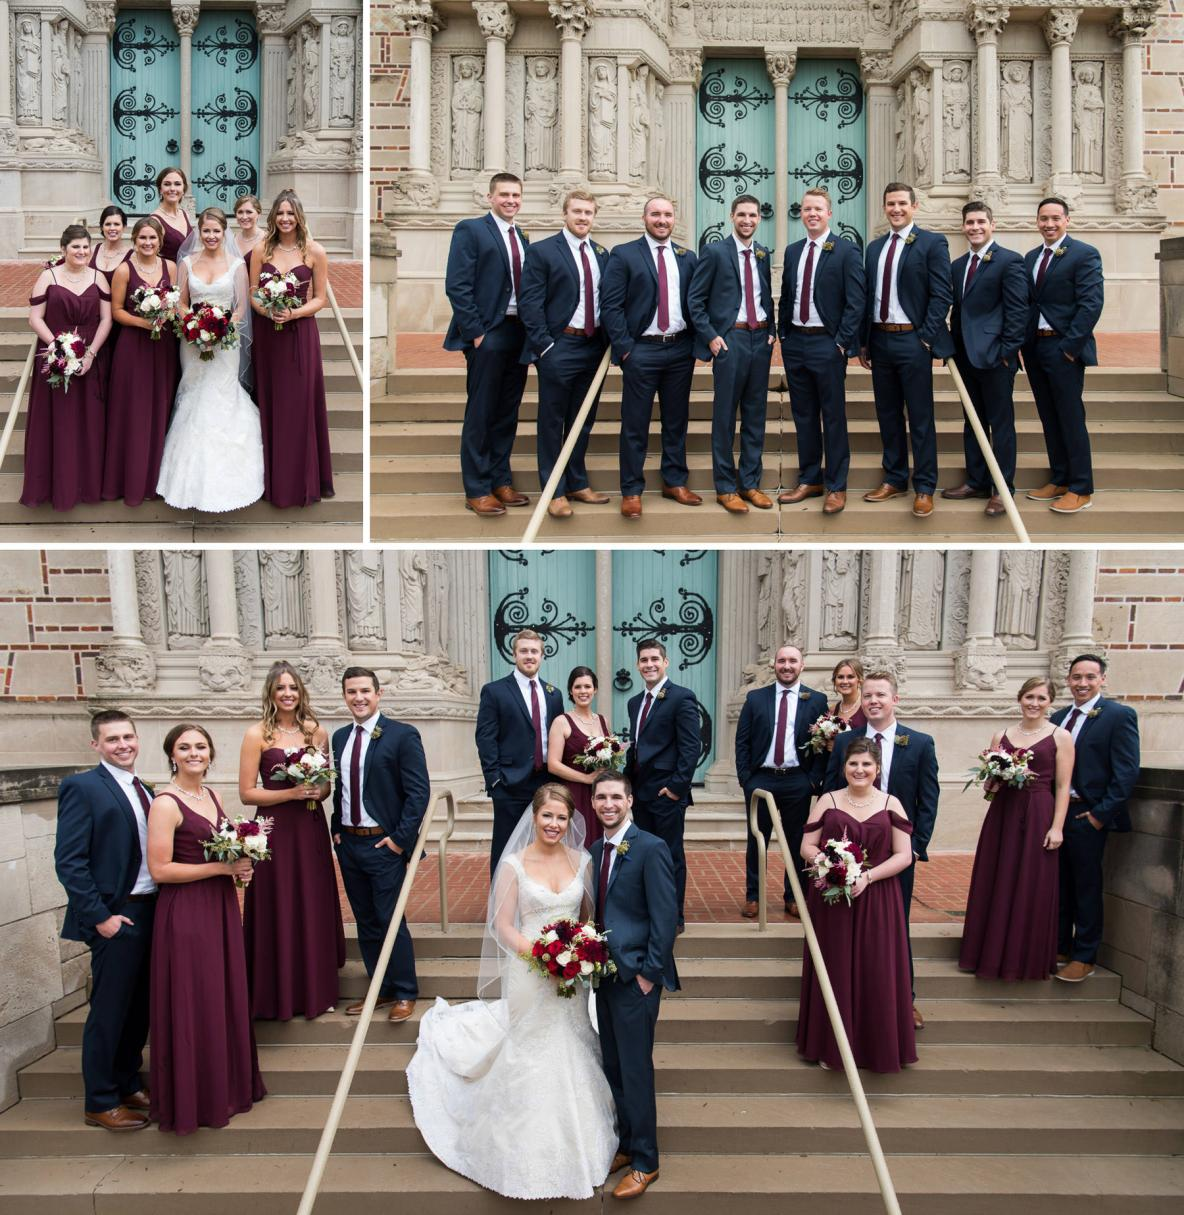 Wedding party photos outside St. Kate's University on stairs with building in background.